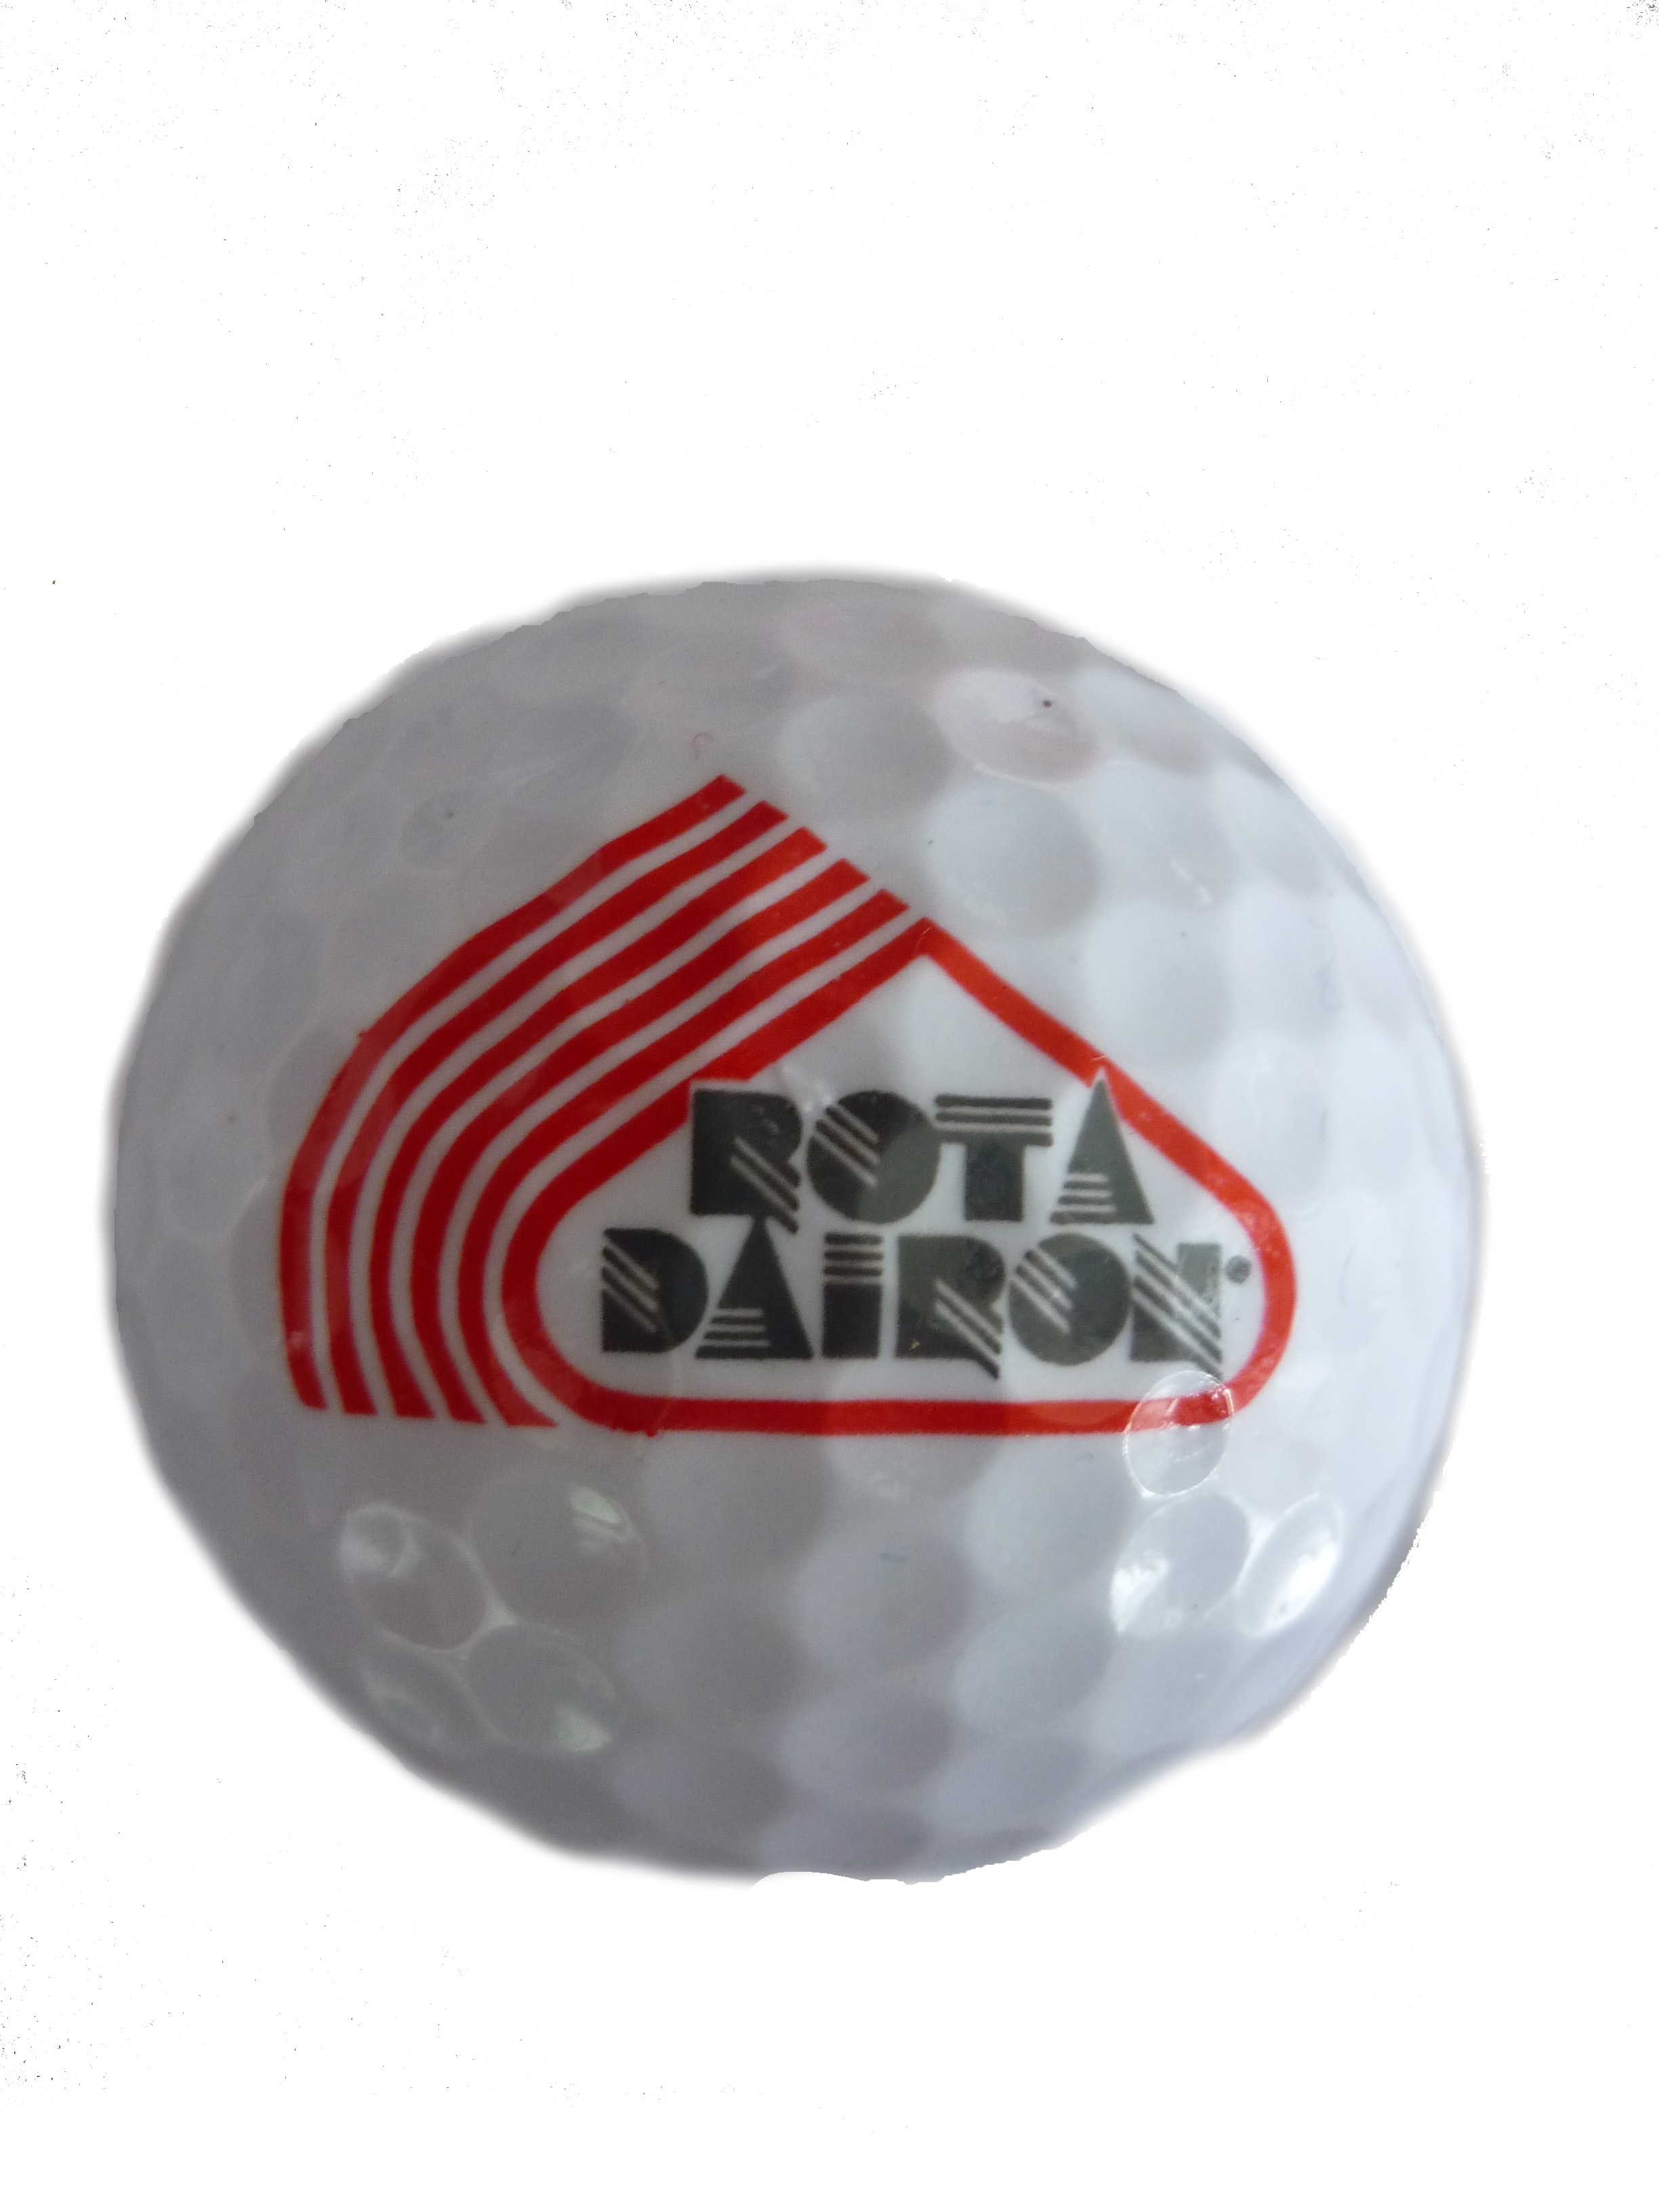 Ball with RotaDairon logo - front view